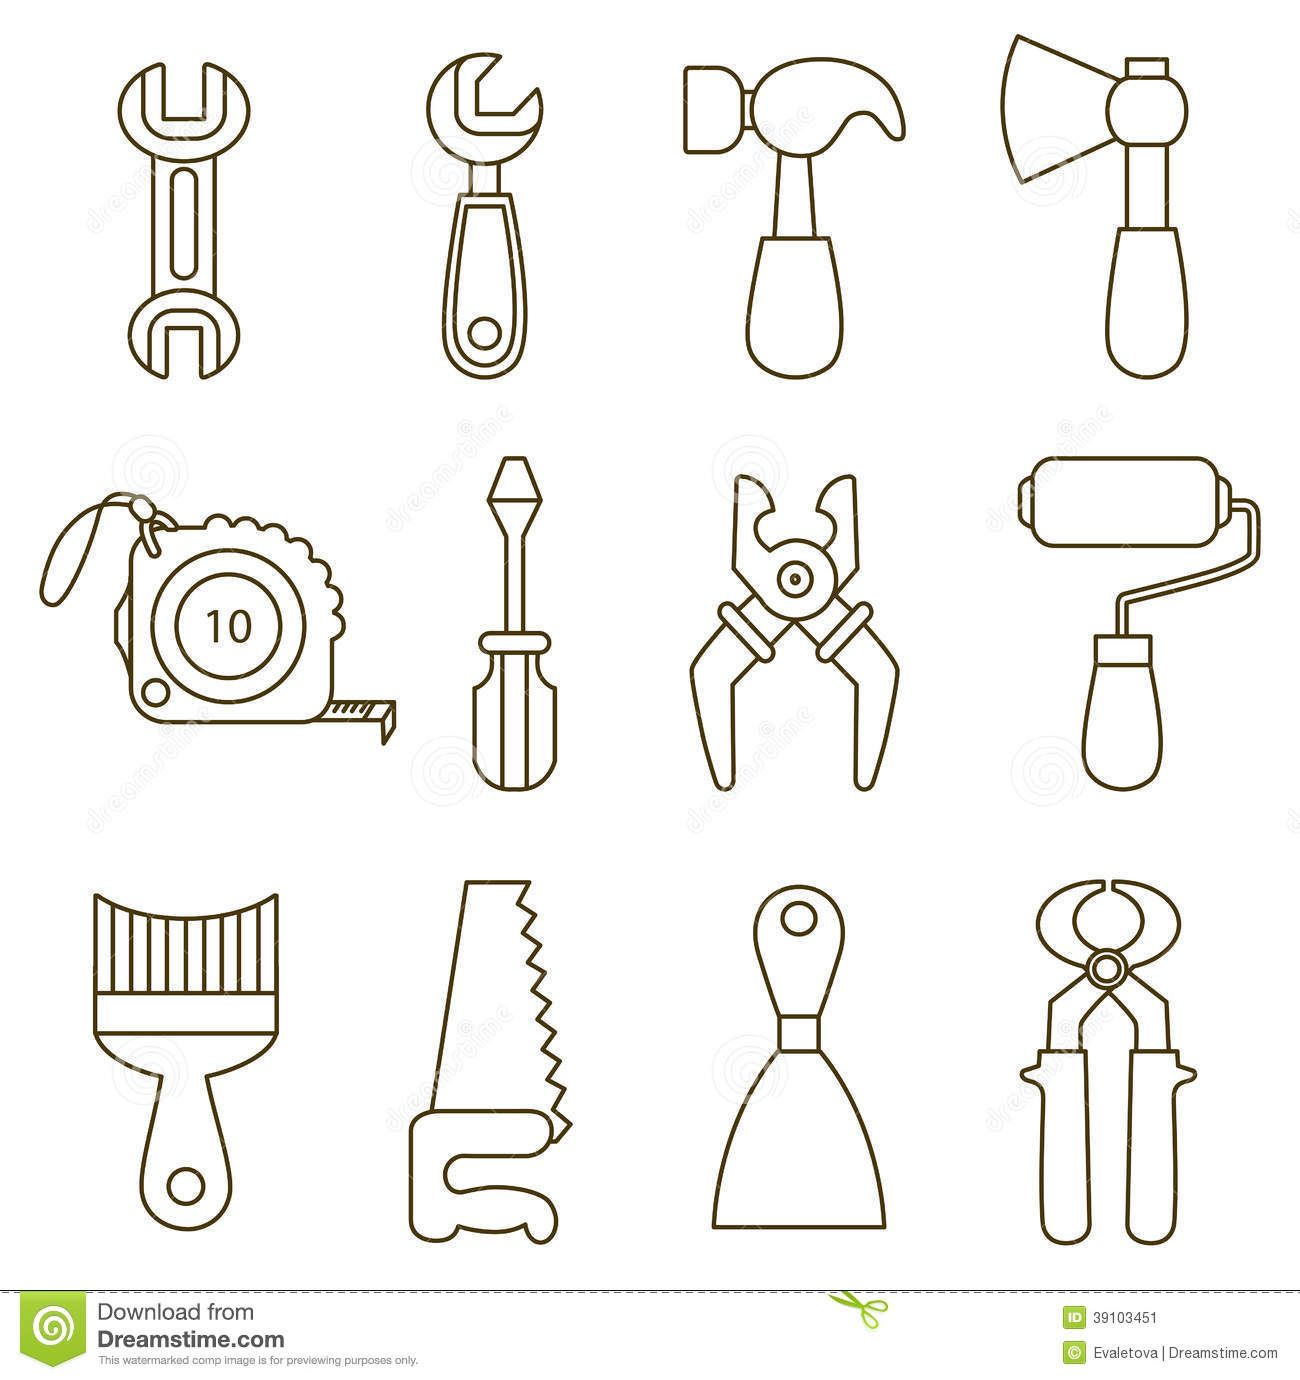 Illustration About Set Of Working Tools Icons Coloring Book Illustration Of Equipment Roller Contour 39103451 Work Tools Fathers Day Crafts Felt Book